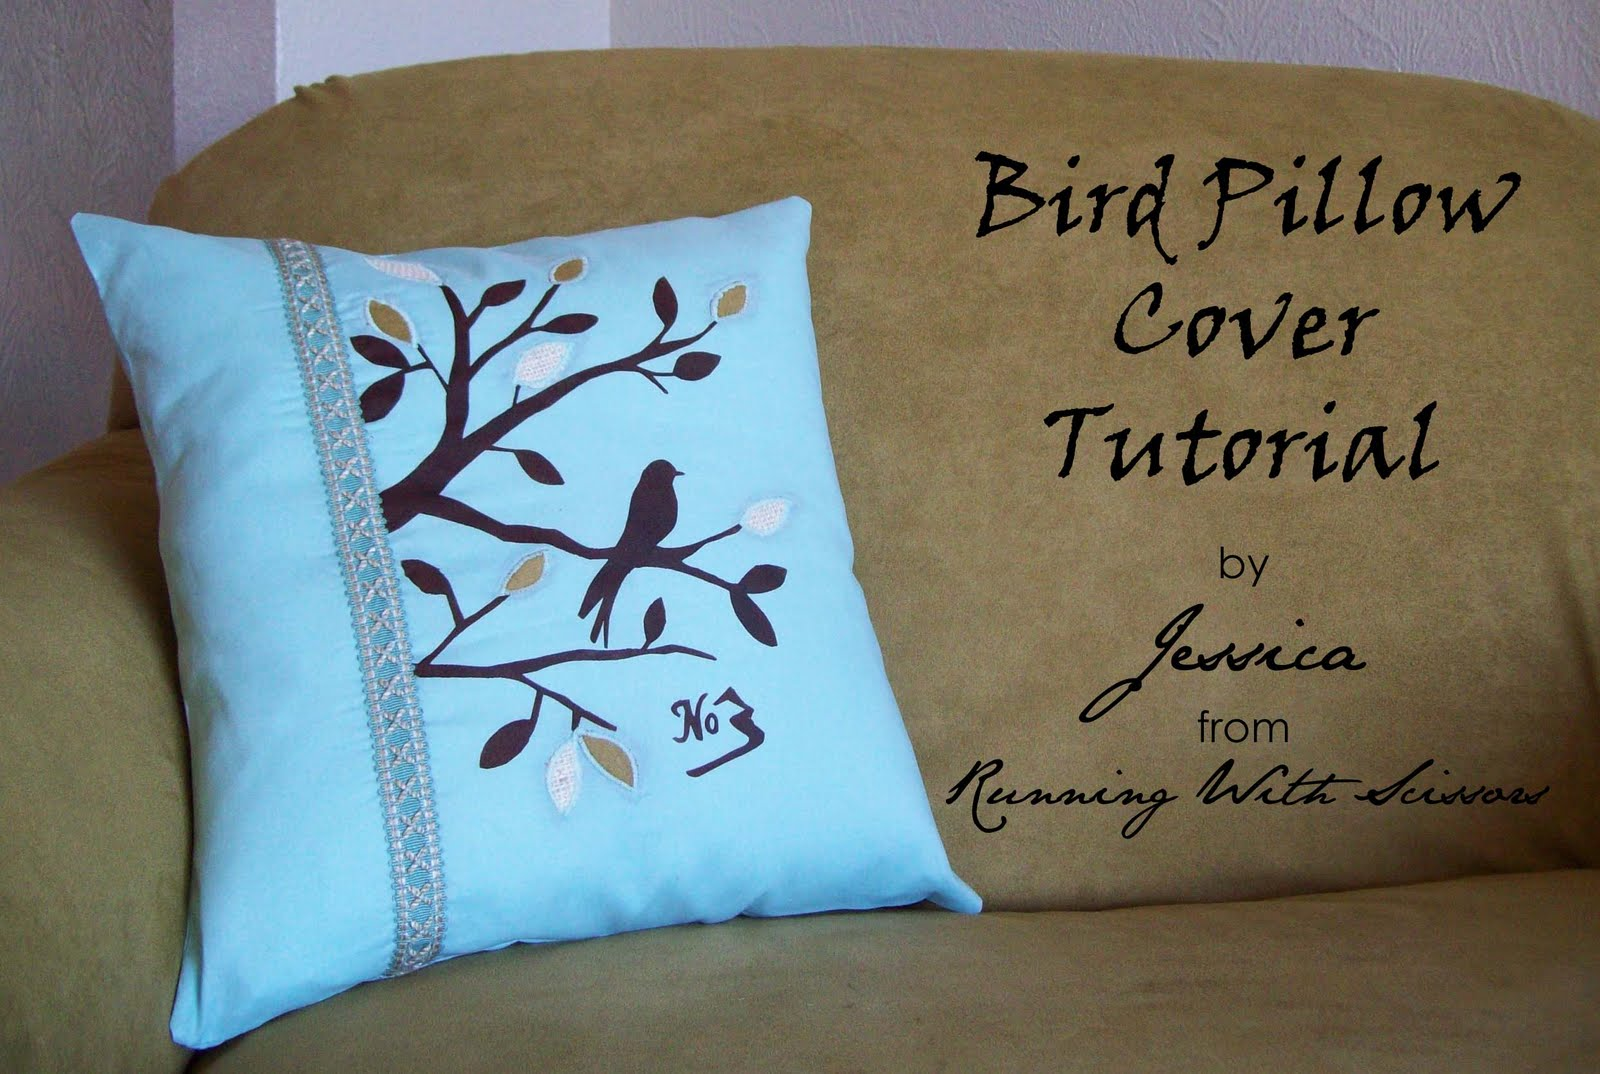 Running With Scissors: Bird Pillow Cover Tutorial